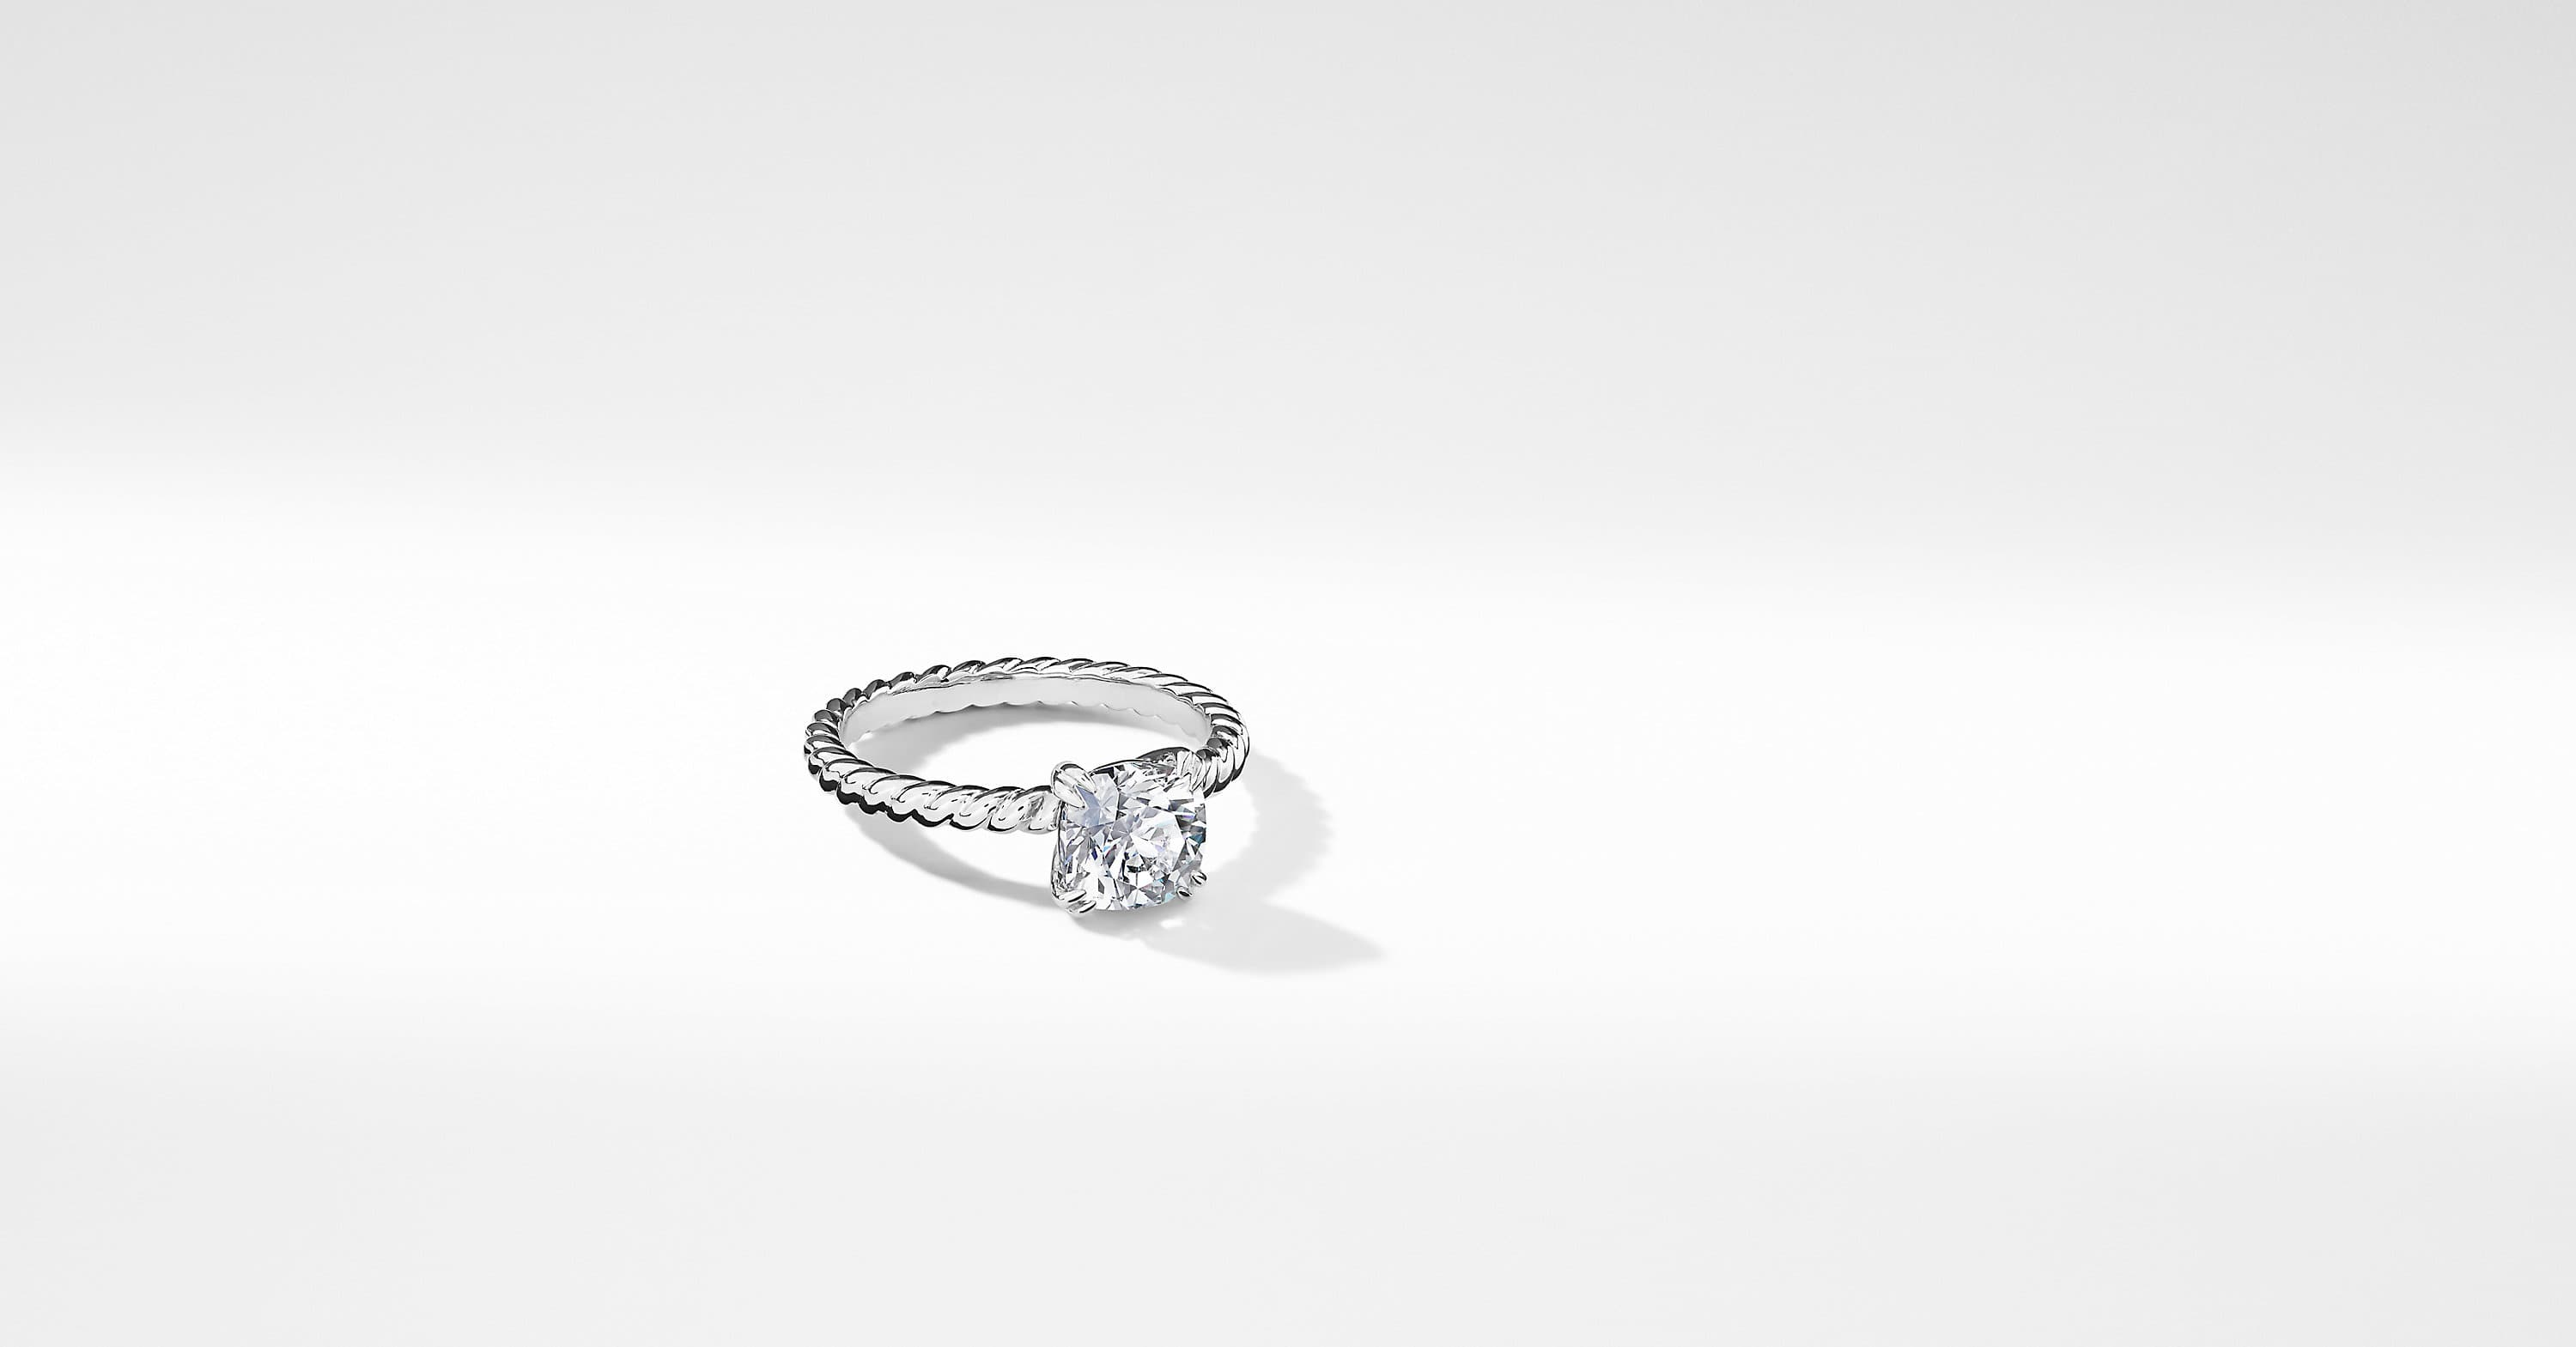 DY Unity Cable Engagement Ring in Platinum, DY Signature Cut